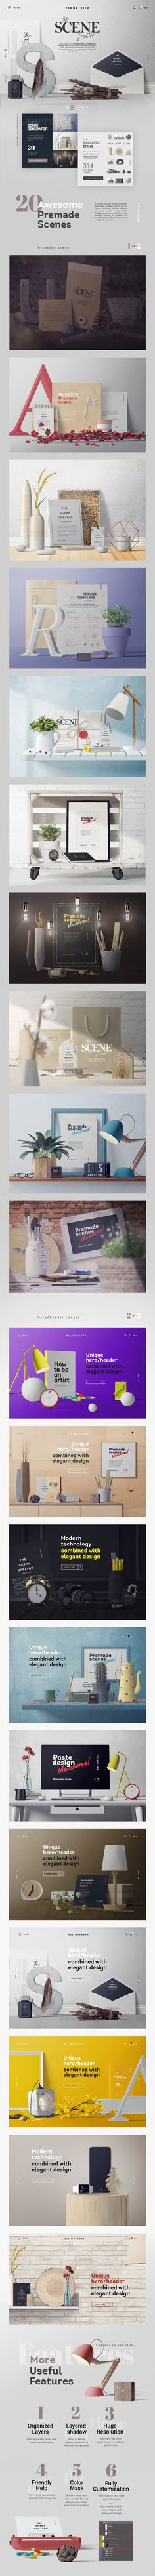 Huge graphic set of unique items and premade scenes. With this set you can create beautiful presentations. Almost no limitations where you can use it: Branding, Header, Web projects, Art, Calligraphy, Typography, and so on.